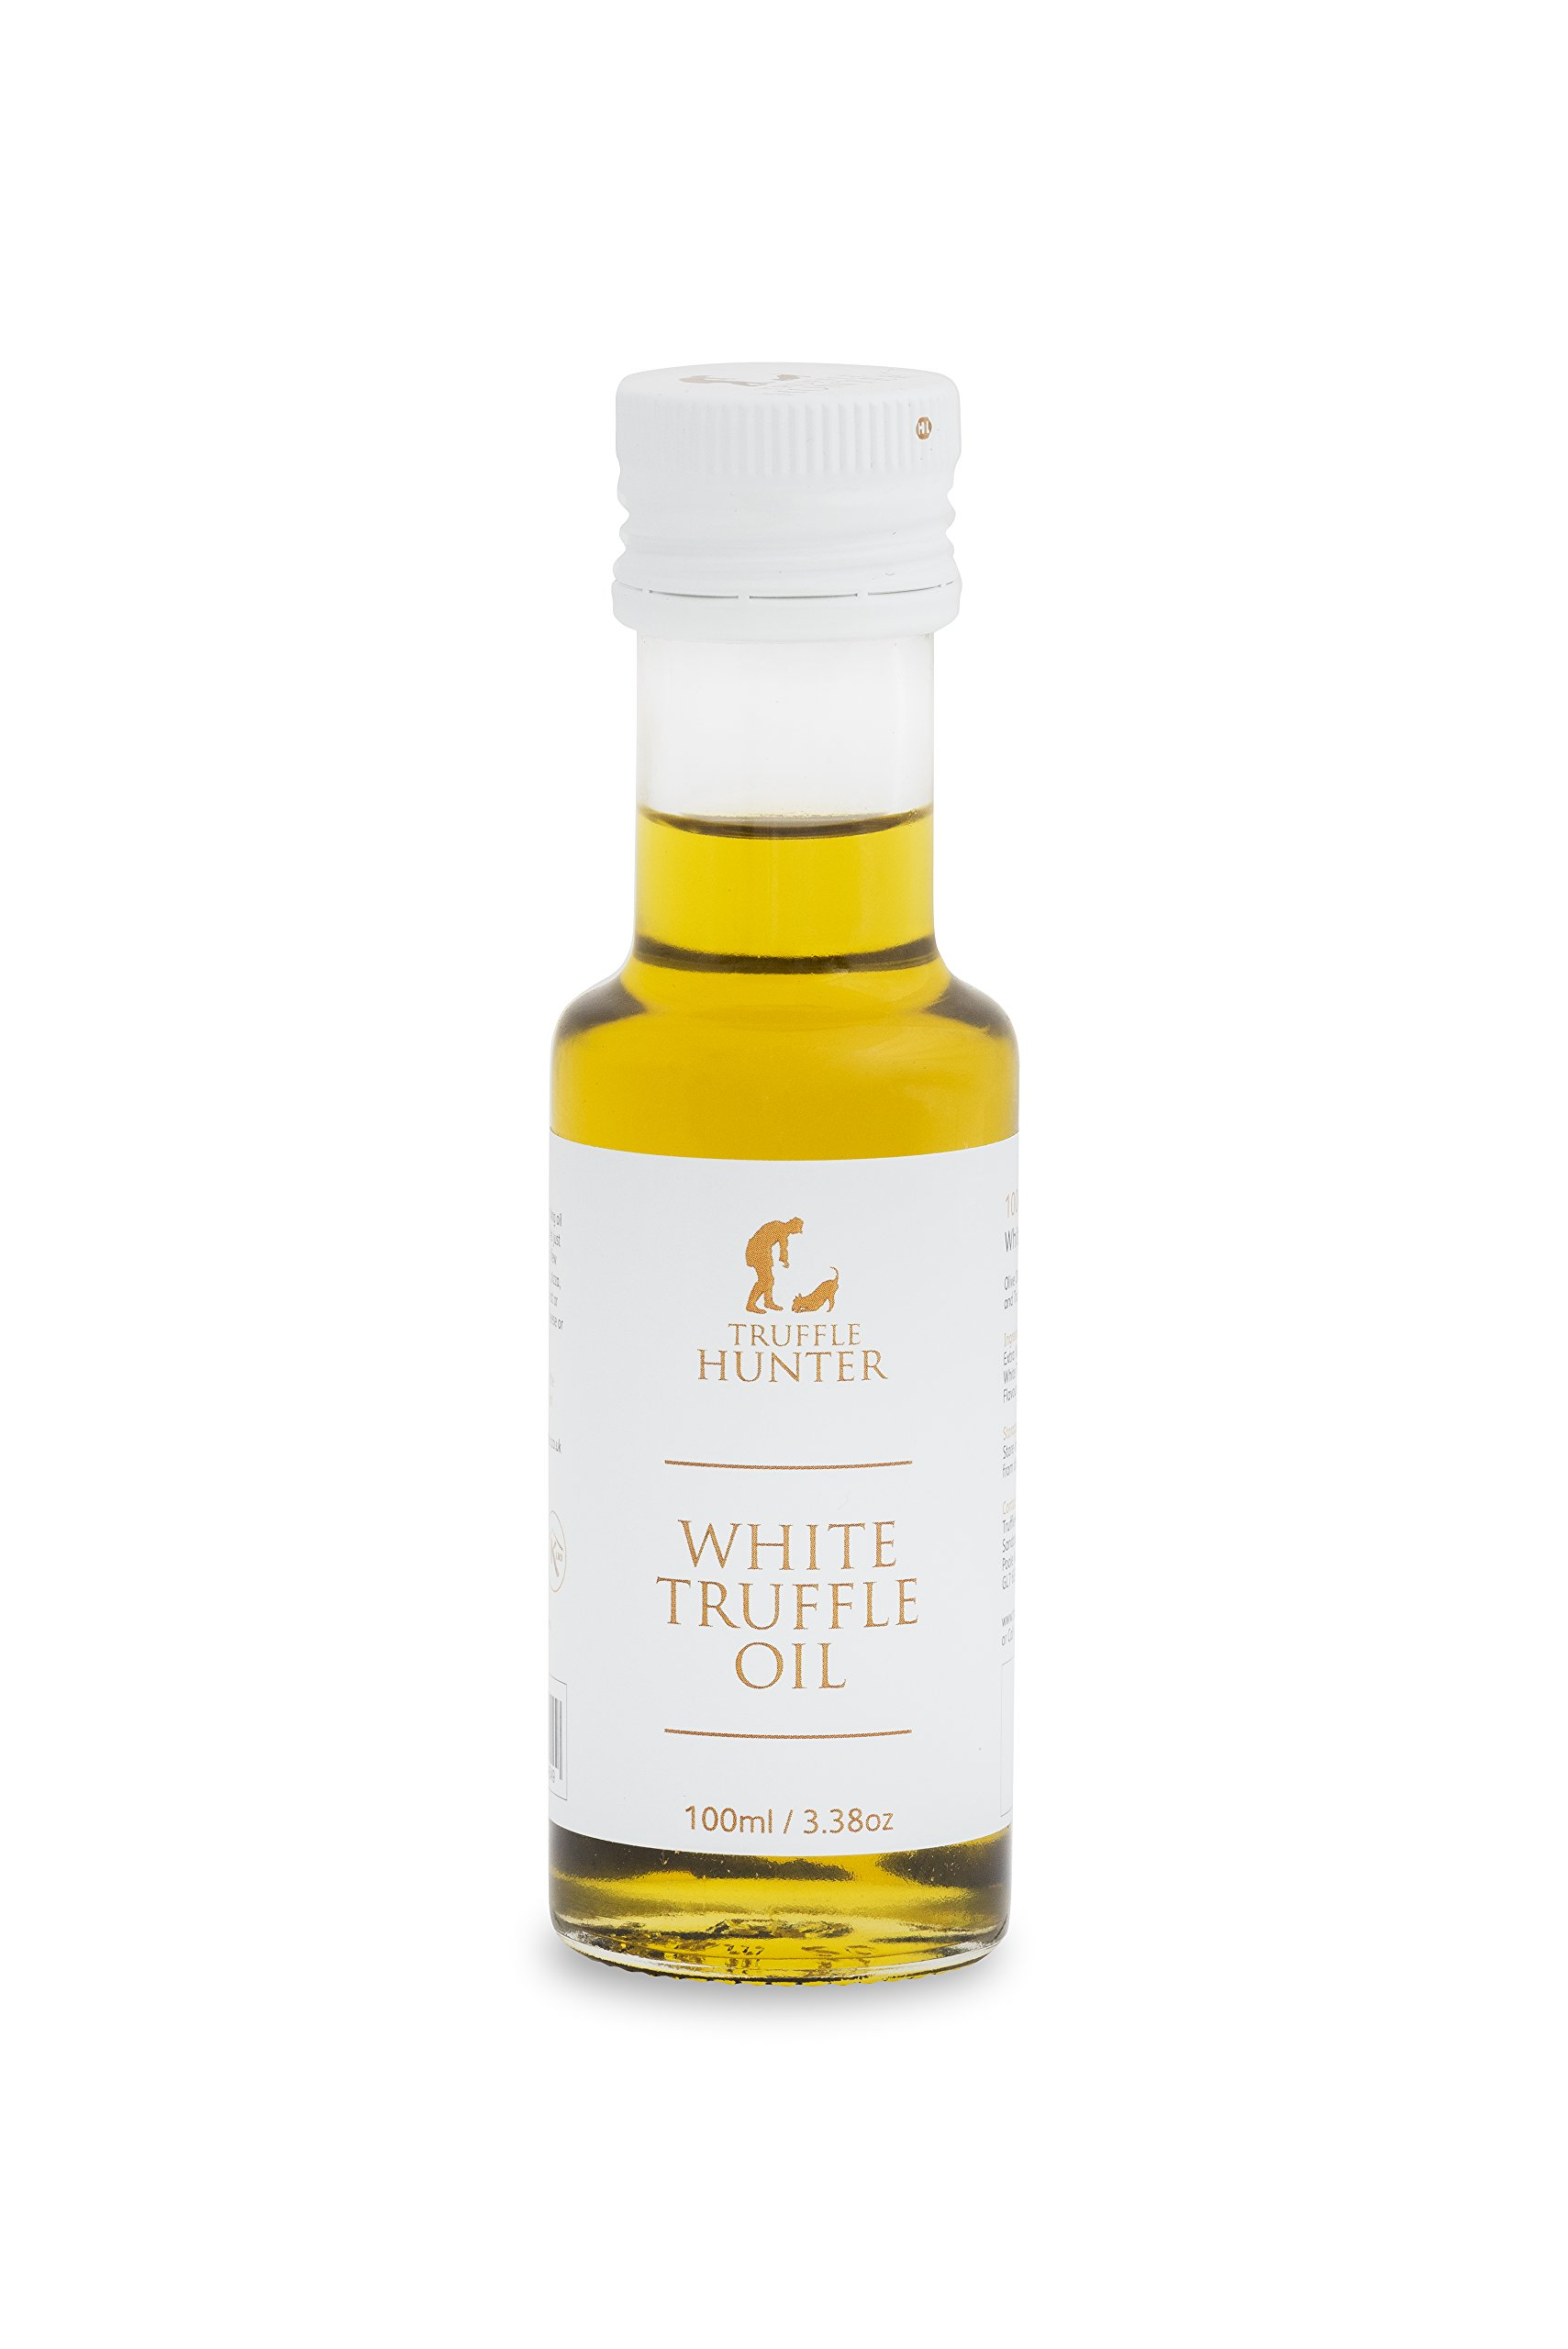 TruffleHunter White Truffle Oil (Tuber Borchii) Real Truffle Pieces Cold Pressed Extra Virgin Olive Oil (3.38 Oz) Gourmet Food Seasoning Marinade Salad Dressing - Vegan Kosher Vegetarian & Gluten Free